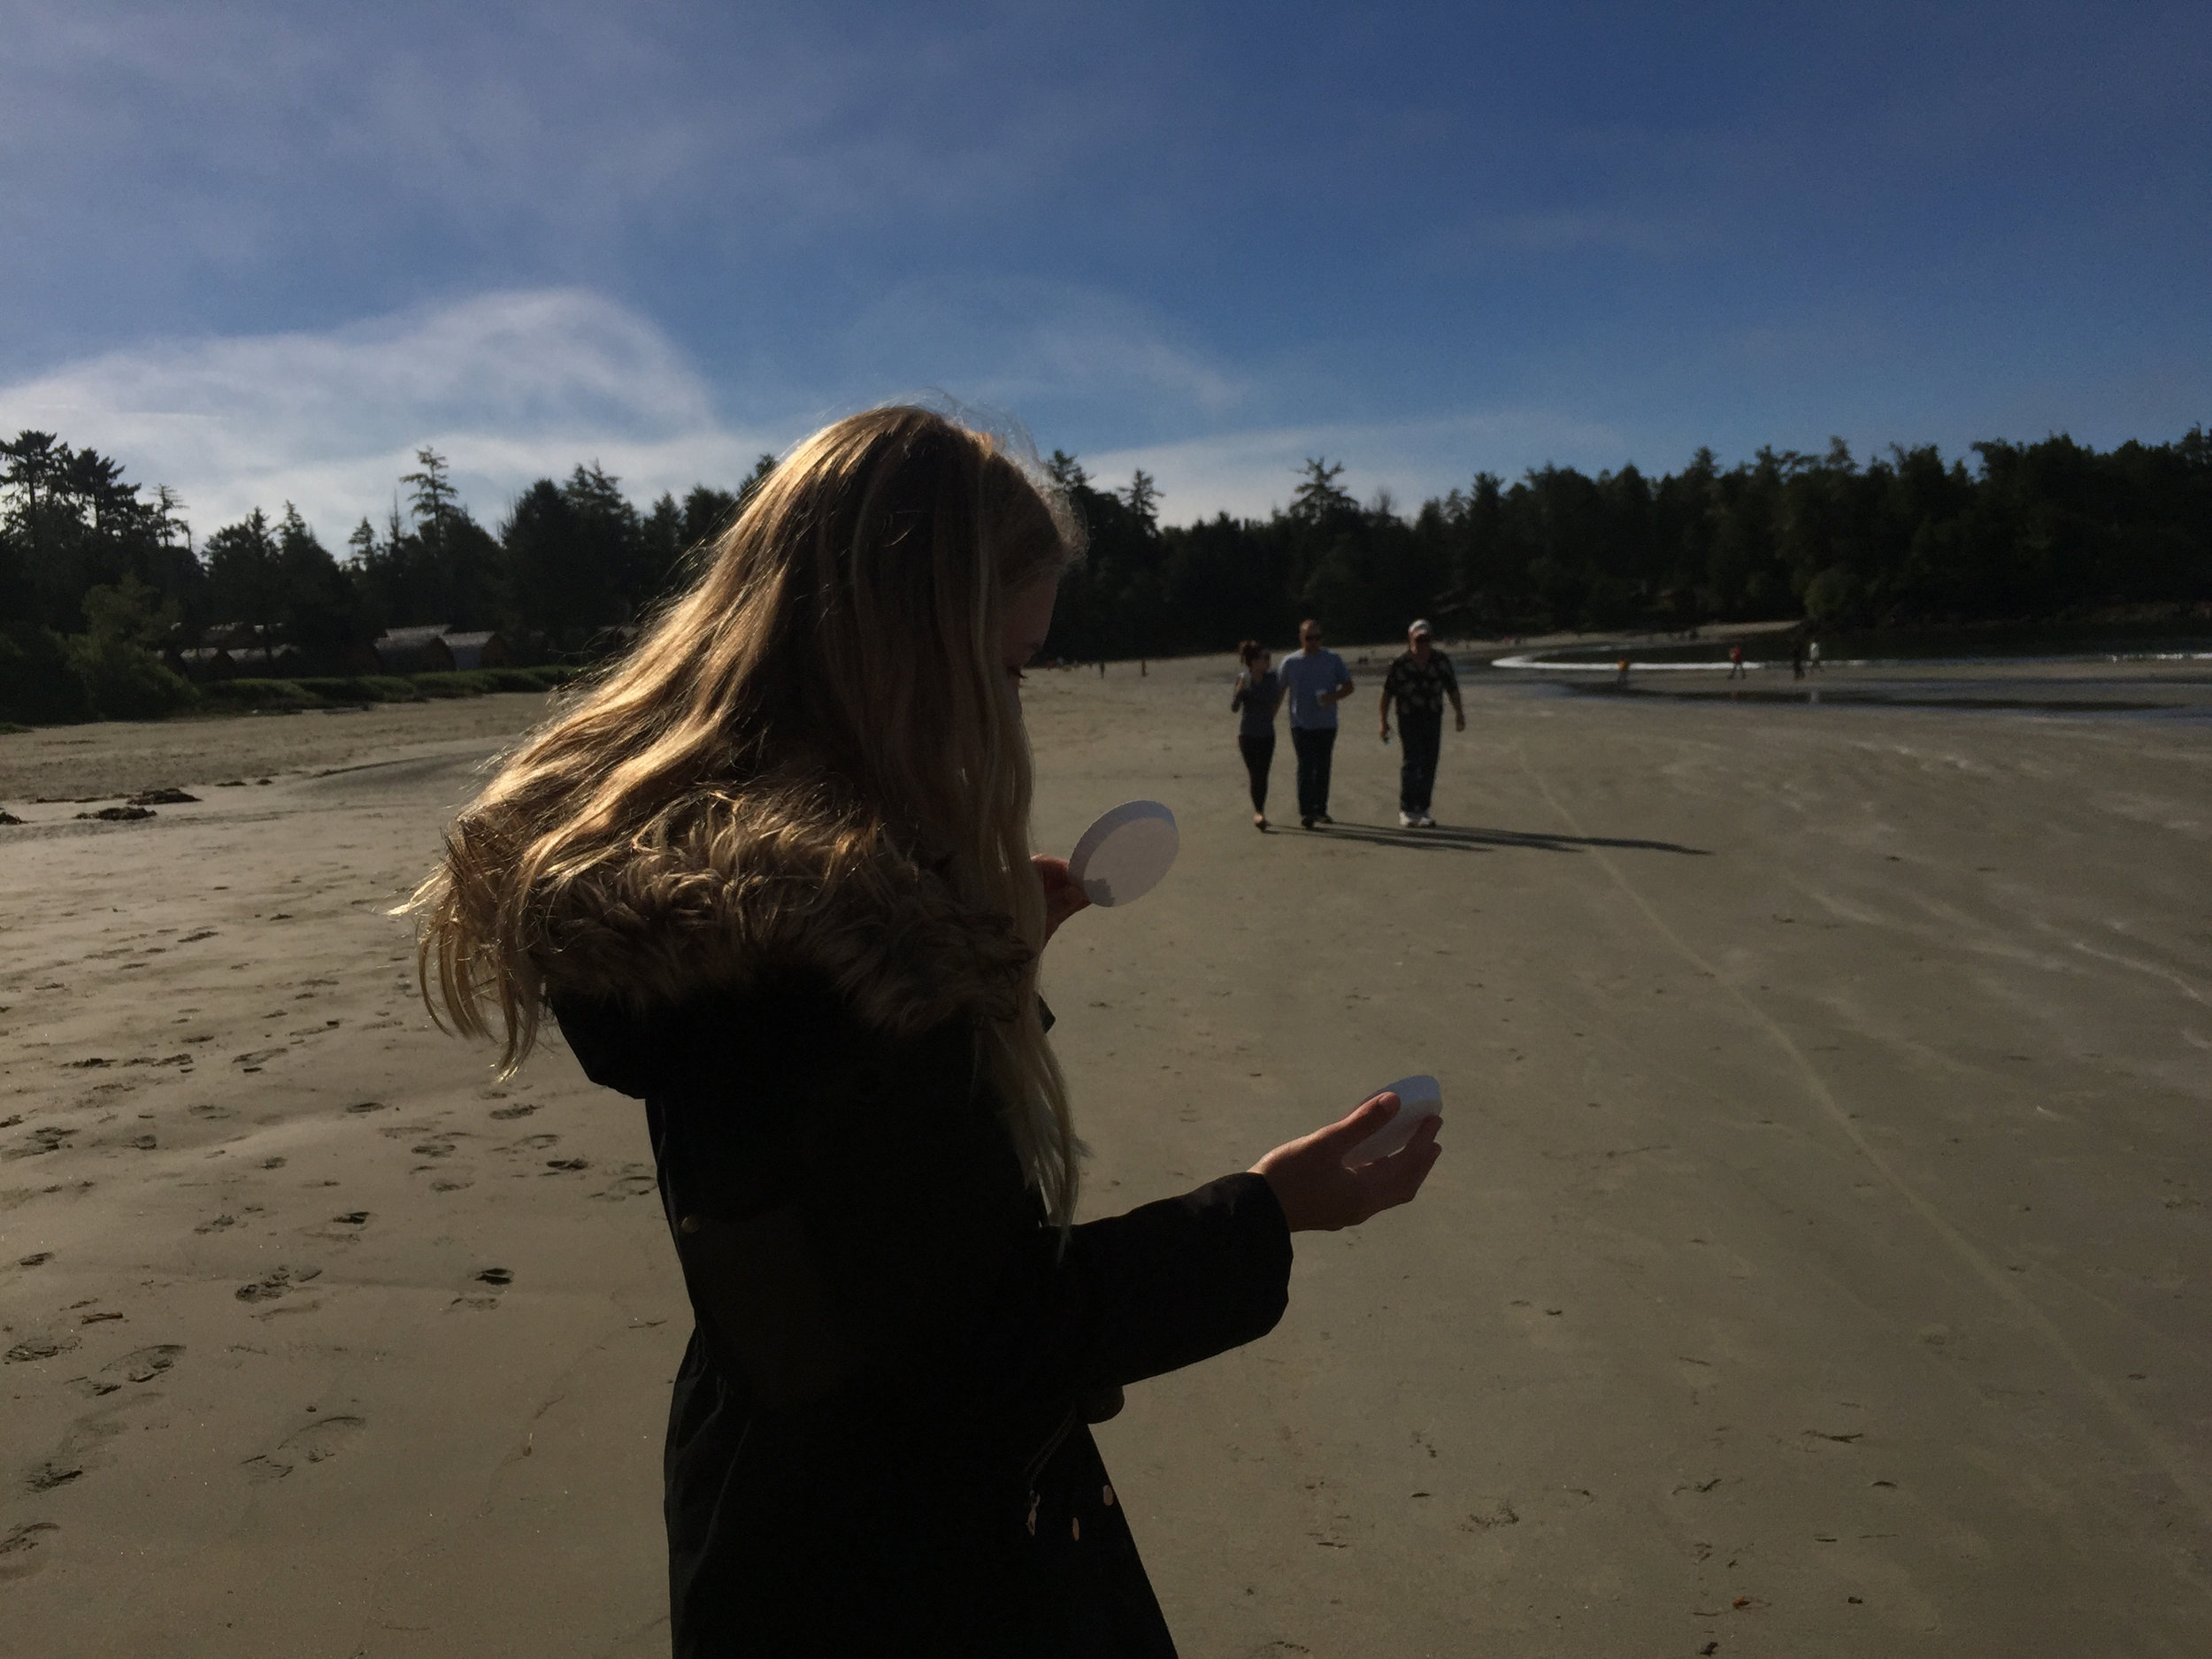 During the eclipse, Vancouver island 2017